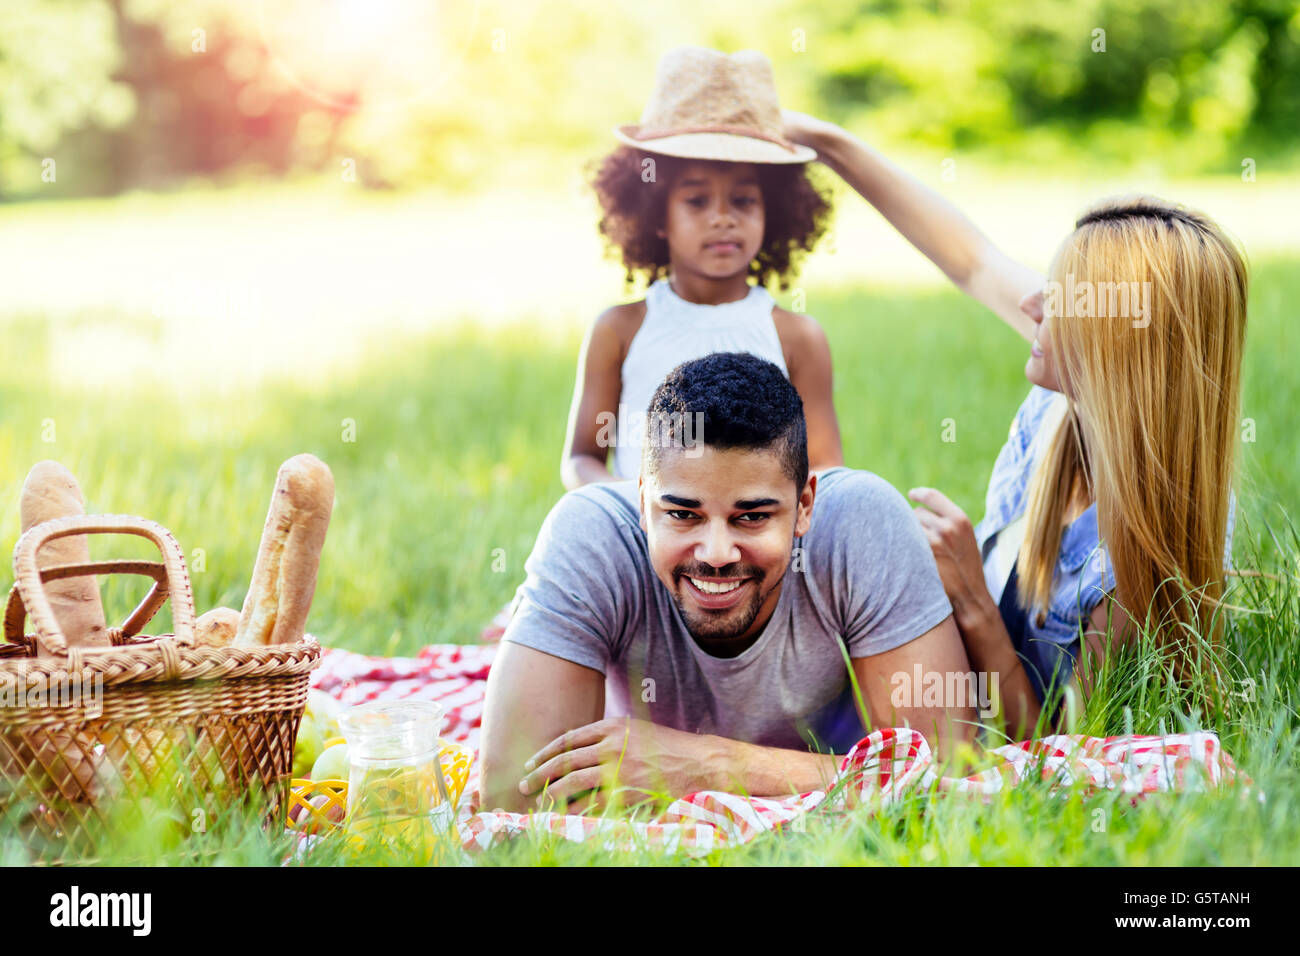 Family enjoying picnicking in nature - Stock Image